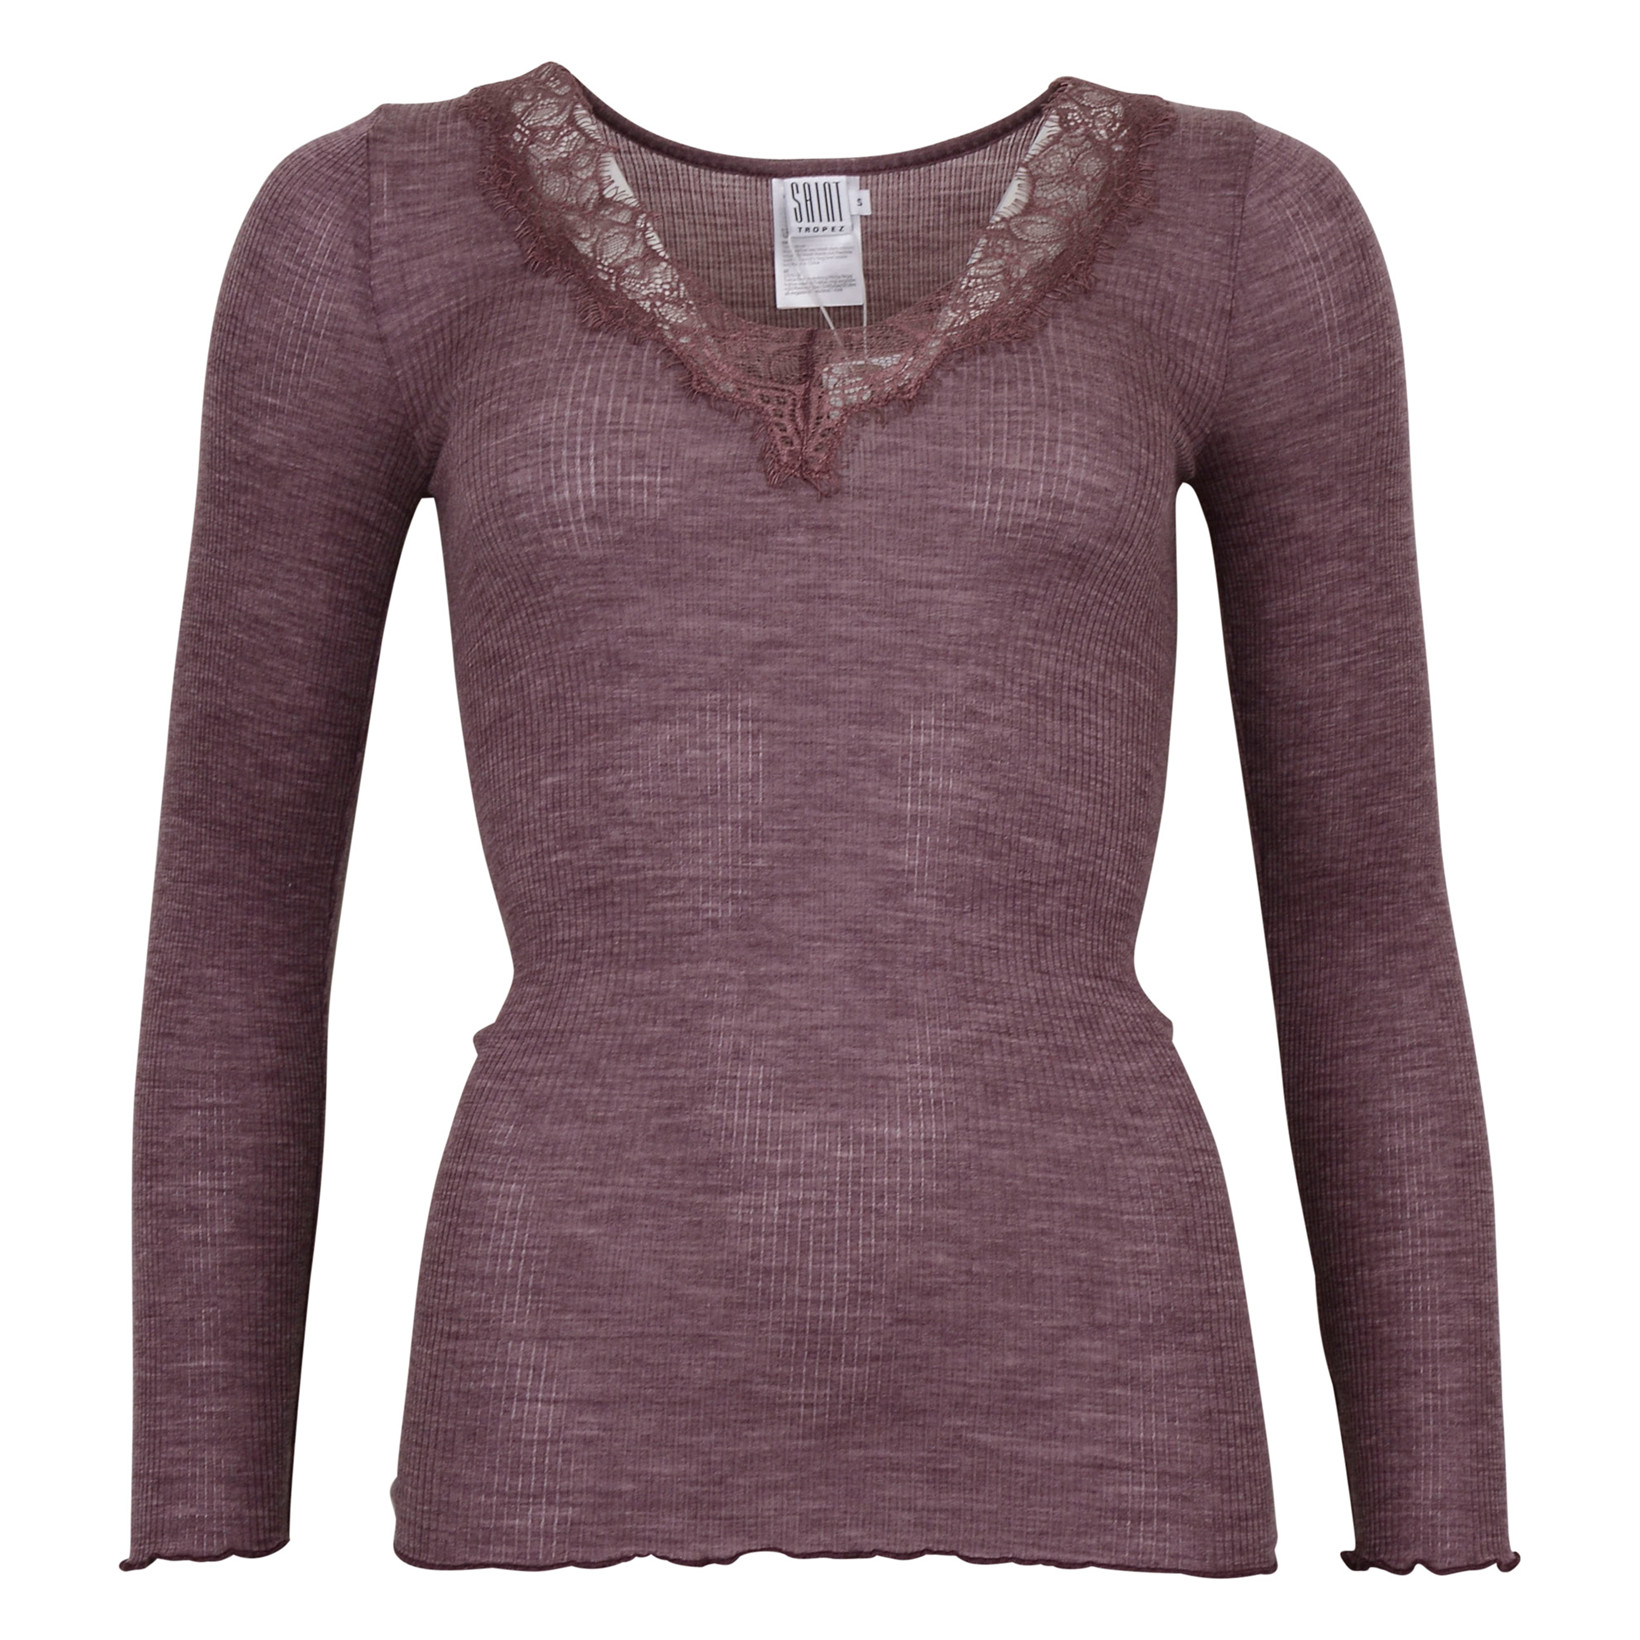 SAINT TROPEZ TOP W. LACE 7311 FLINT